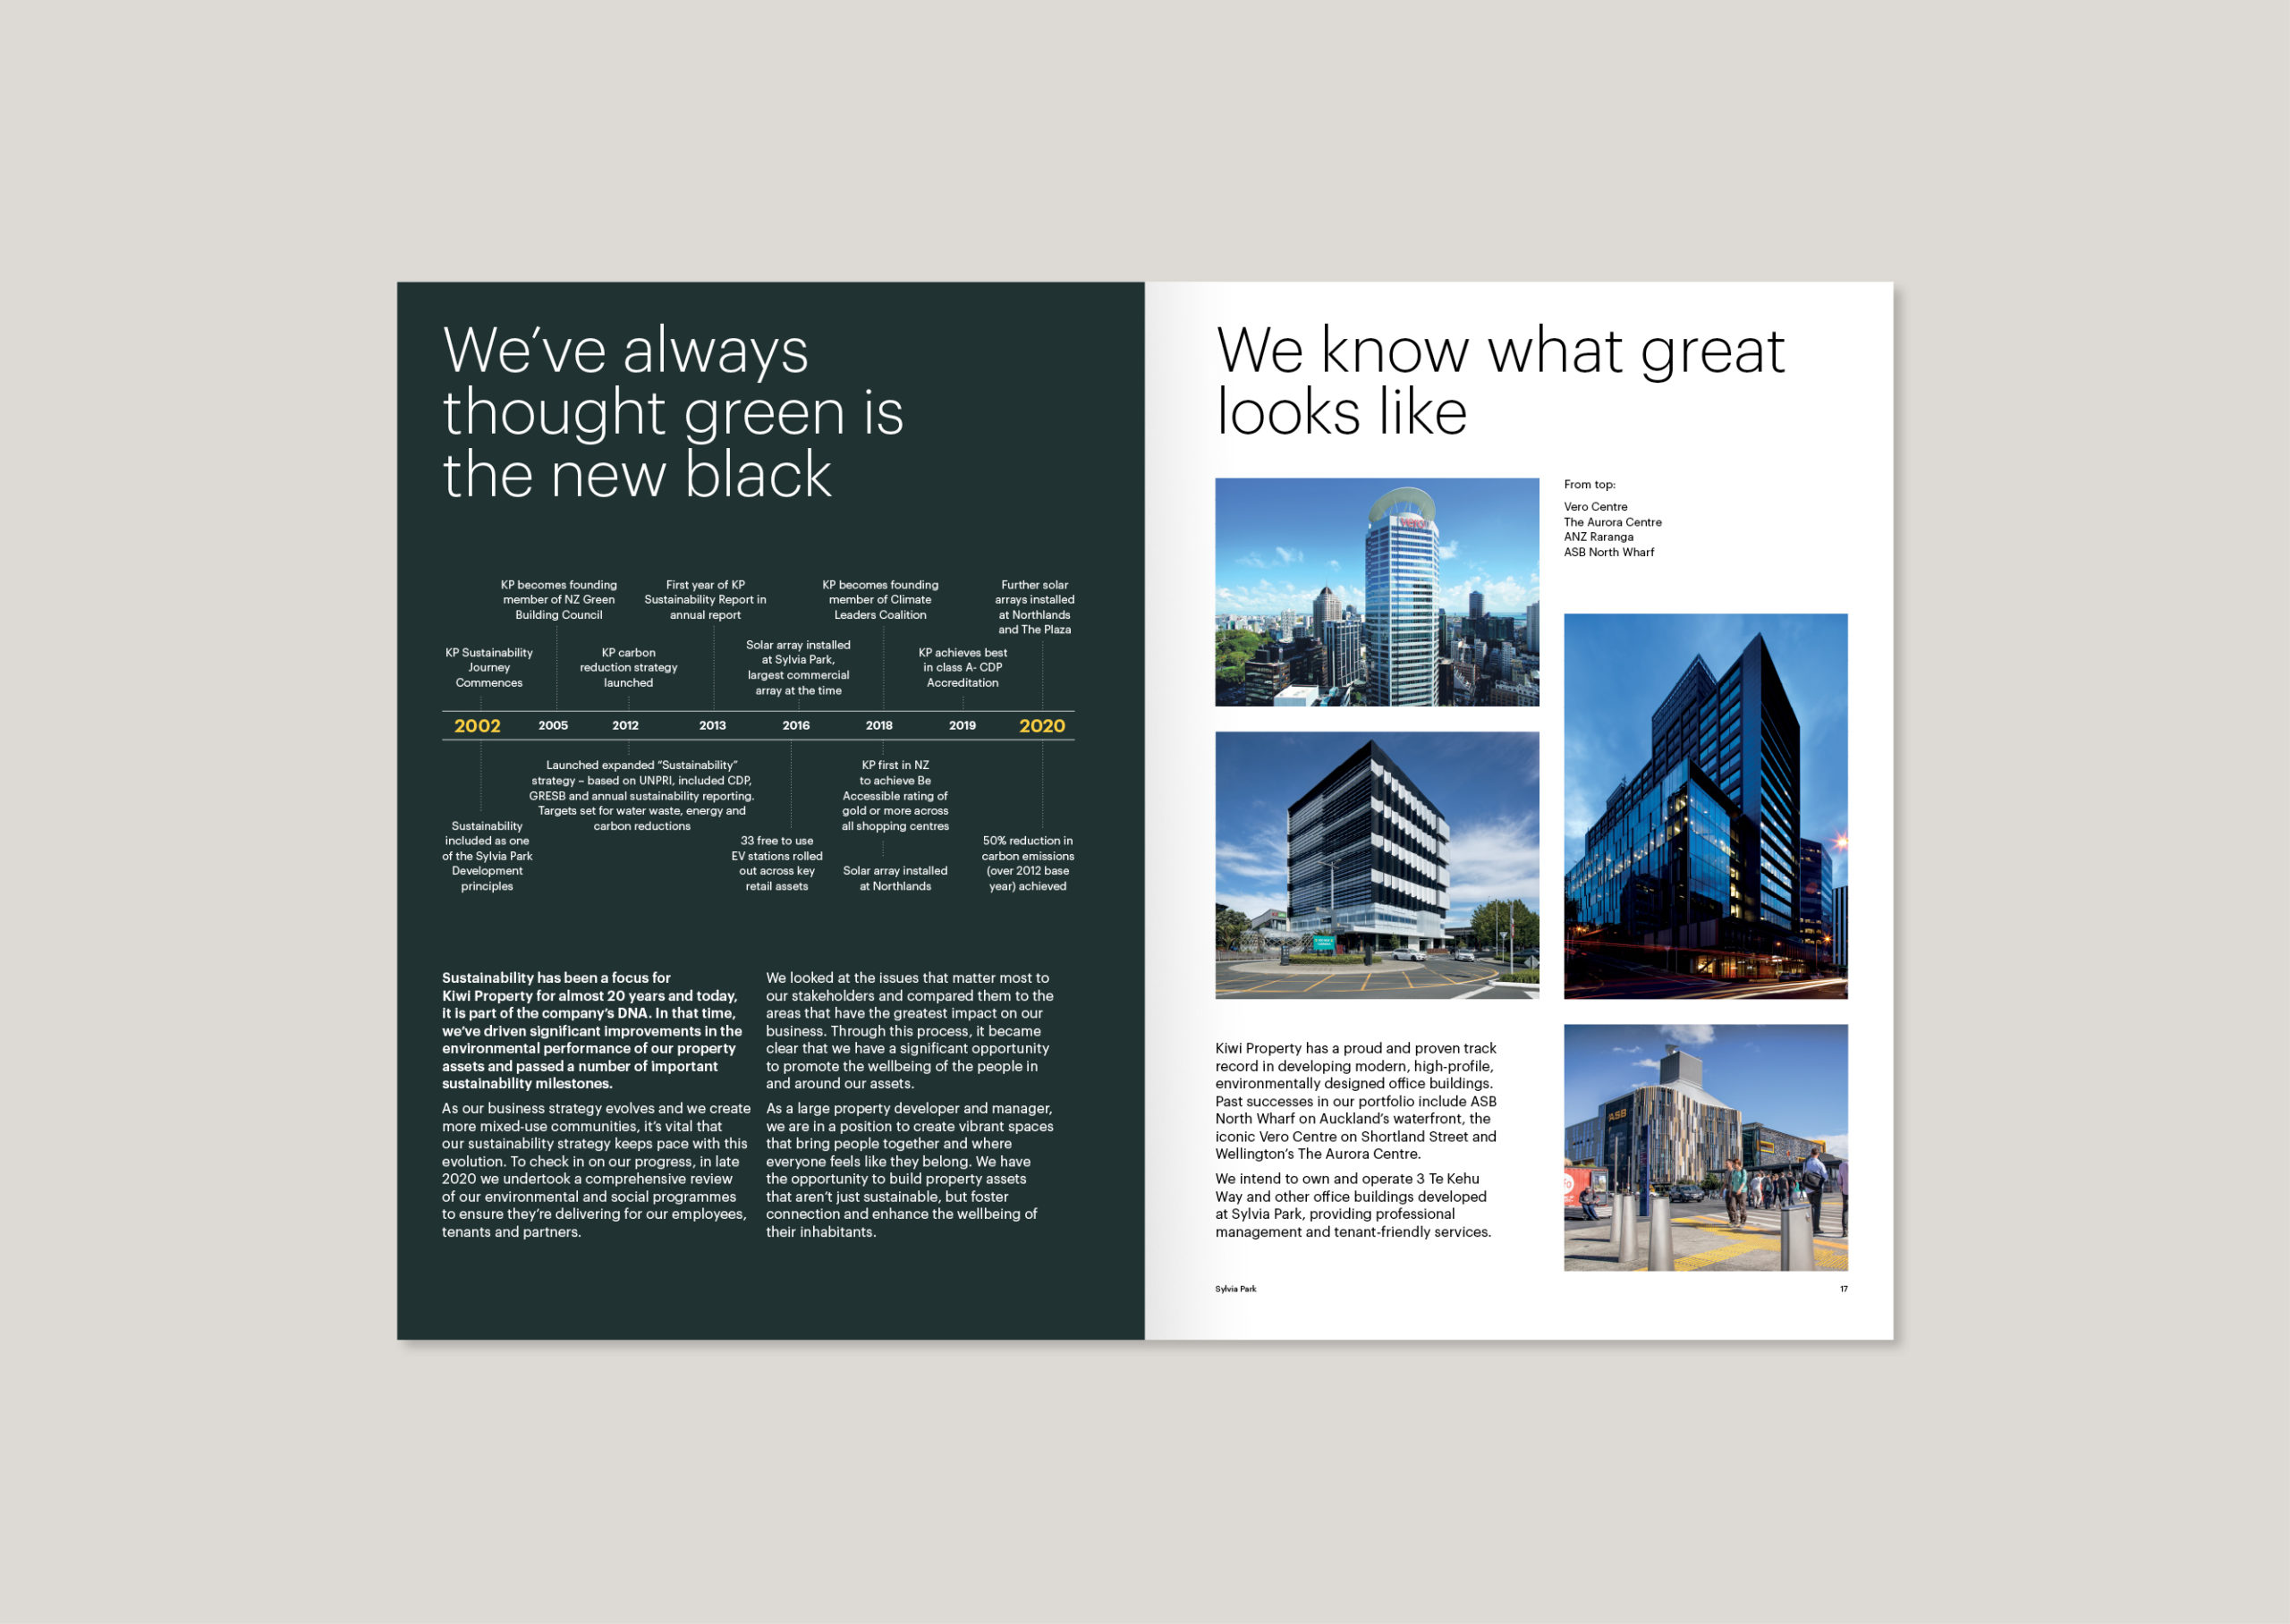 Spread featuring 25 year timeline of Kiwi Property's sustainability achievements as well as key buildings they own and manage across New Zealand